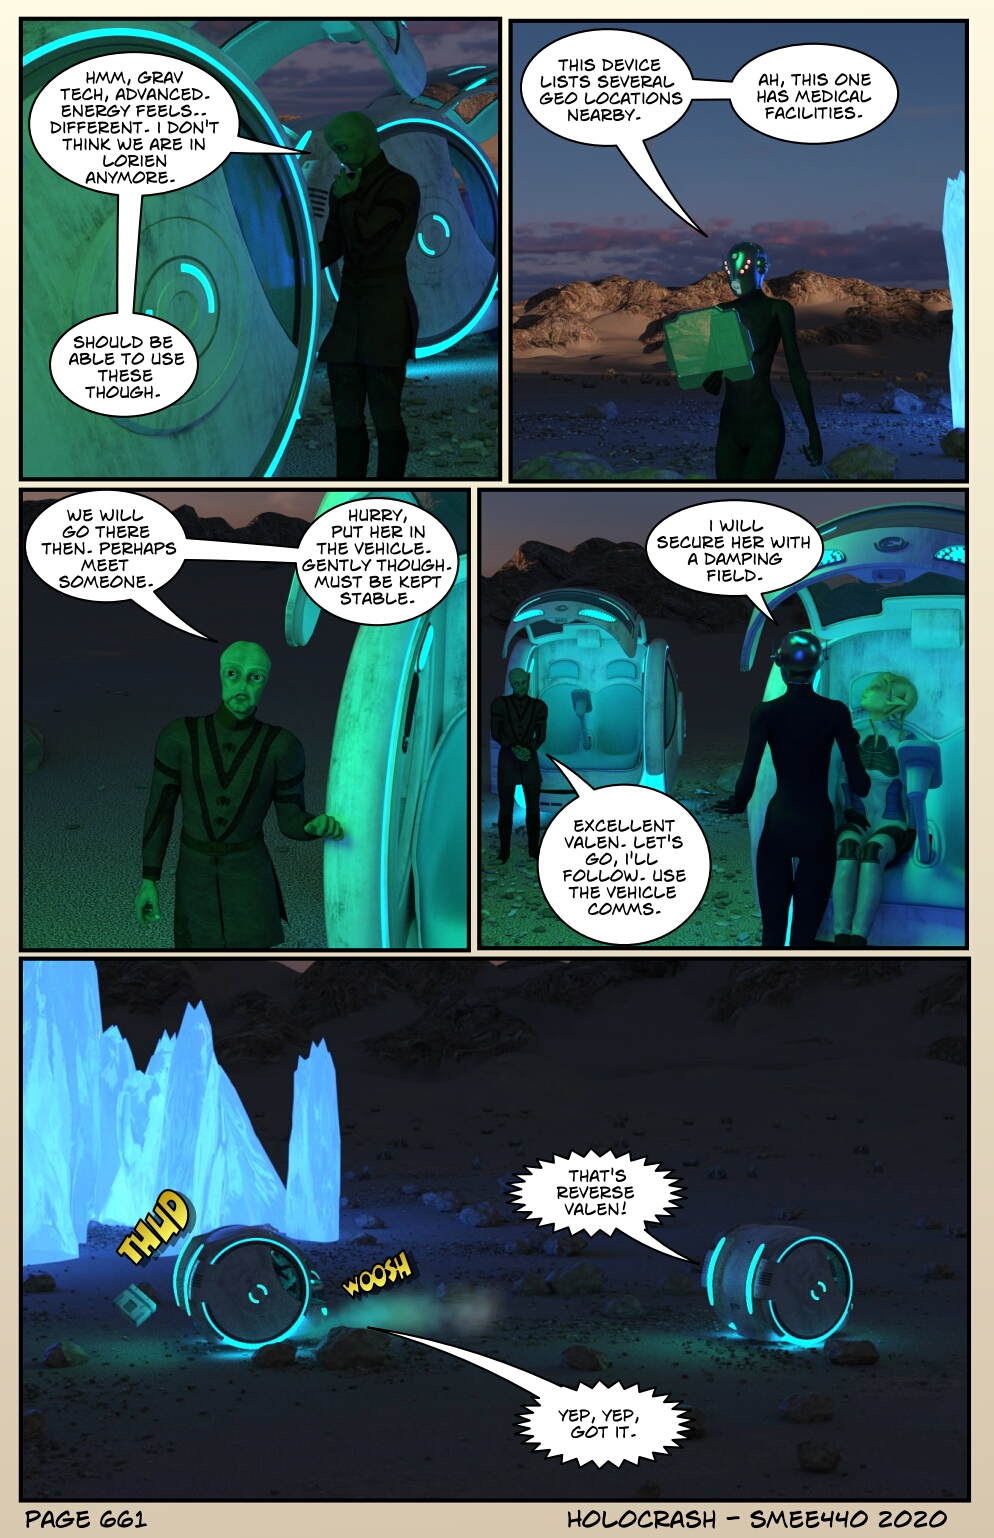 Holocrash - Chapter 14 - Page 0661